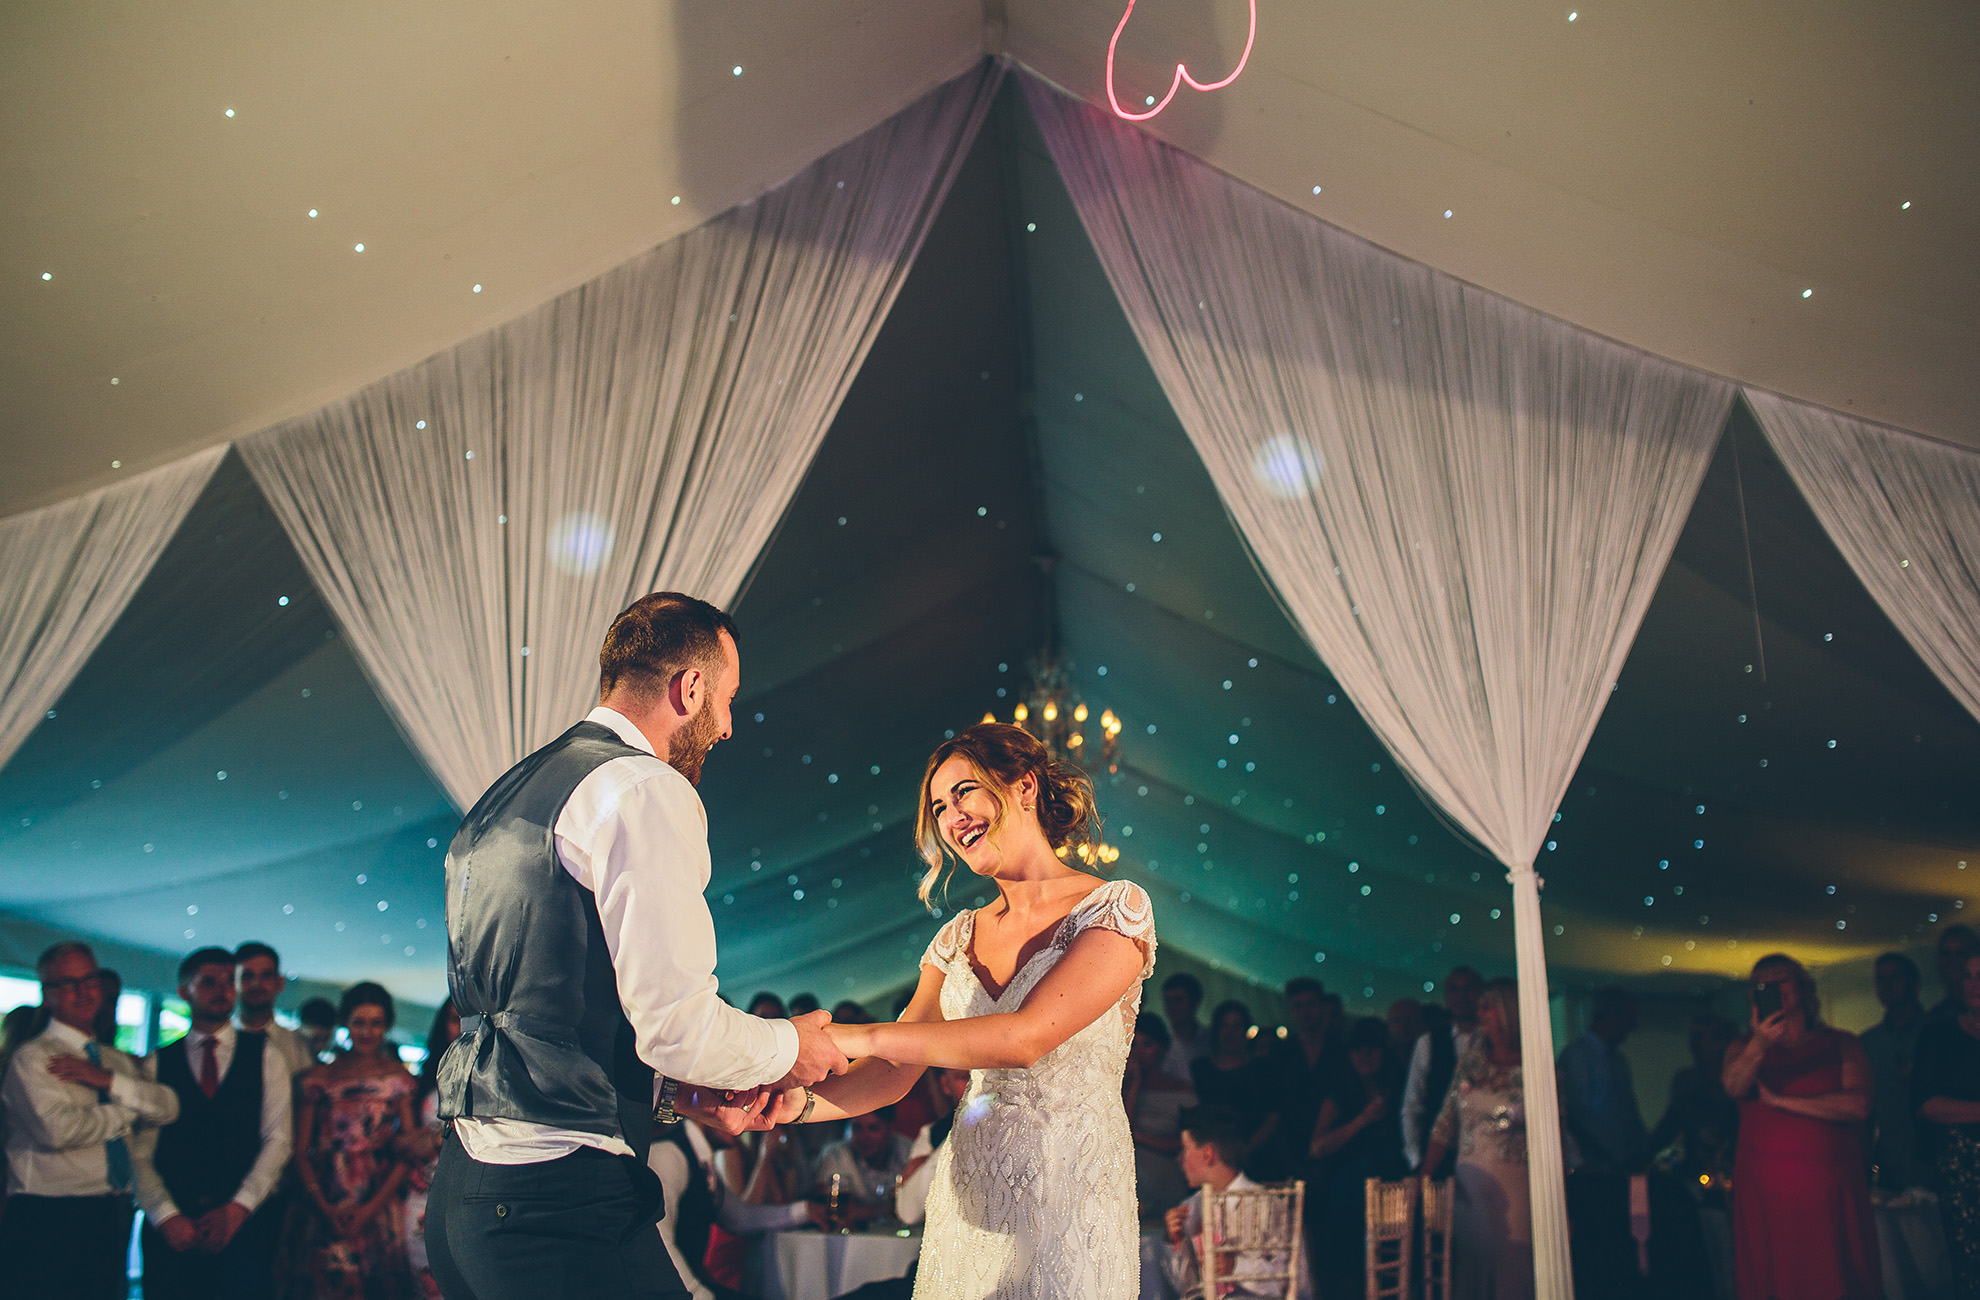 A bride and groom have fun during their first dance at Combermere Abbey wedding venue in Cheshire